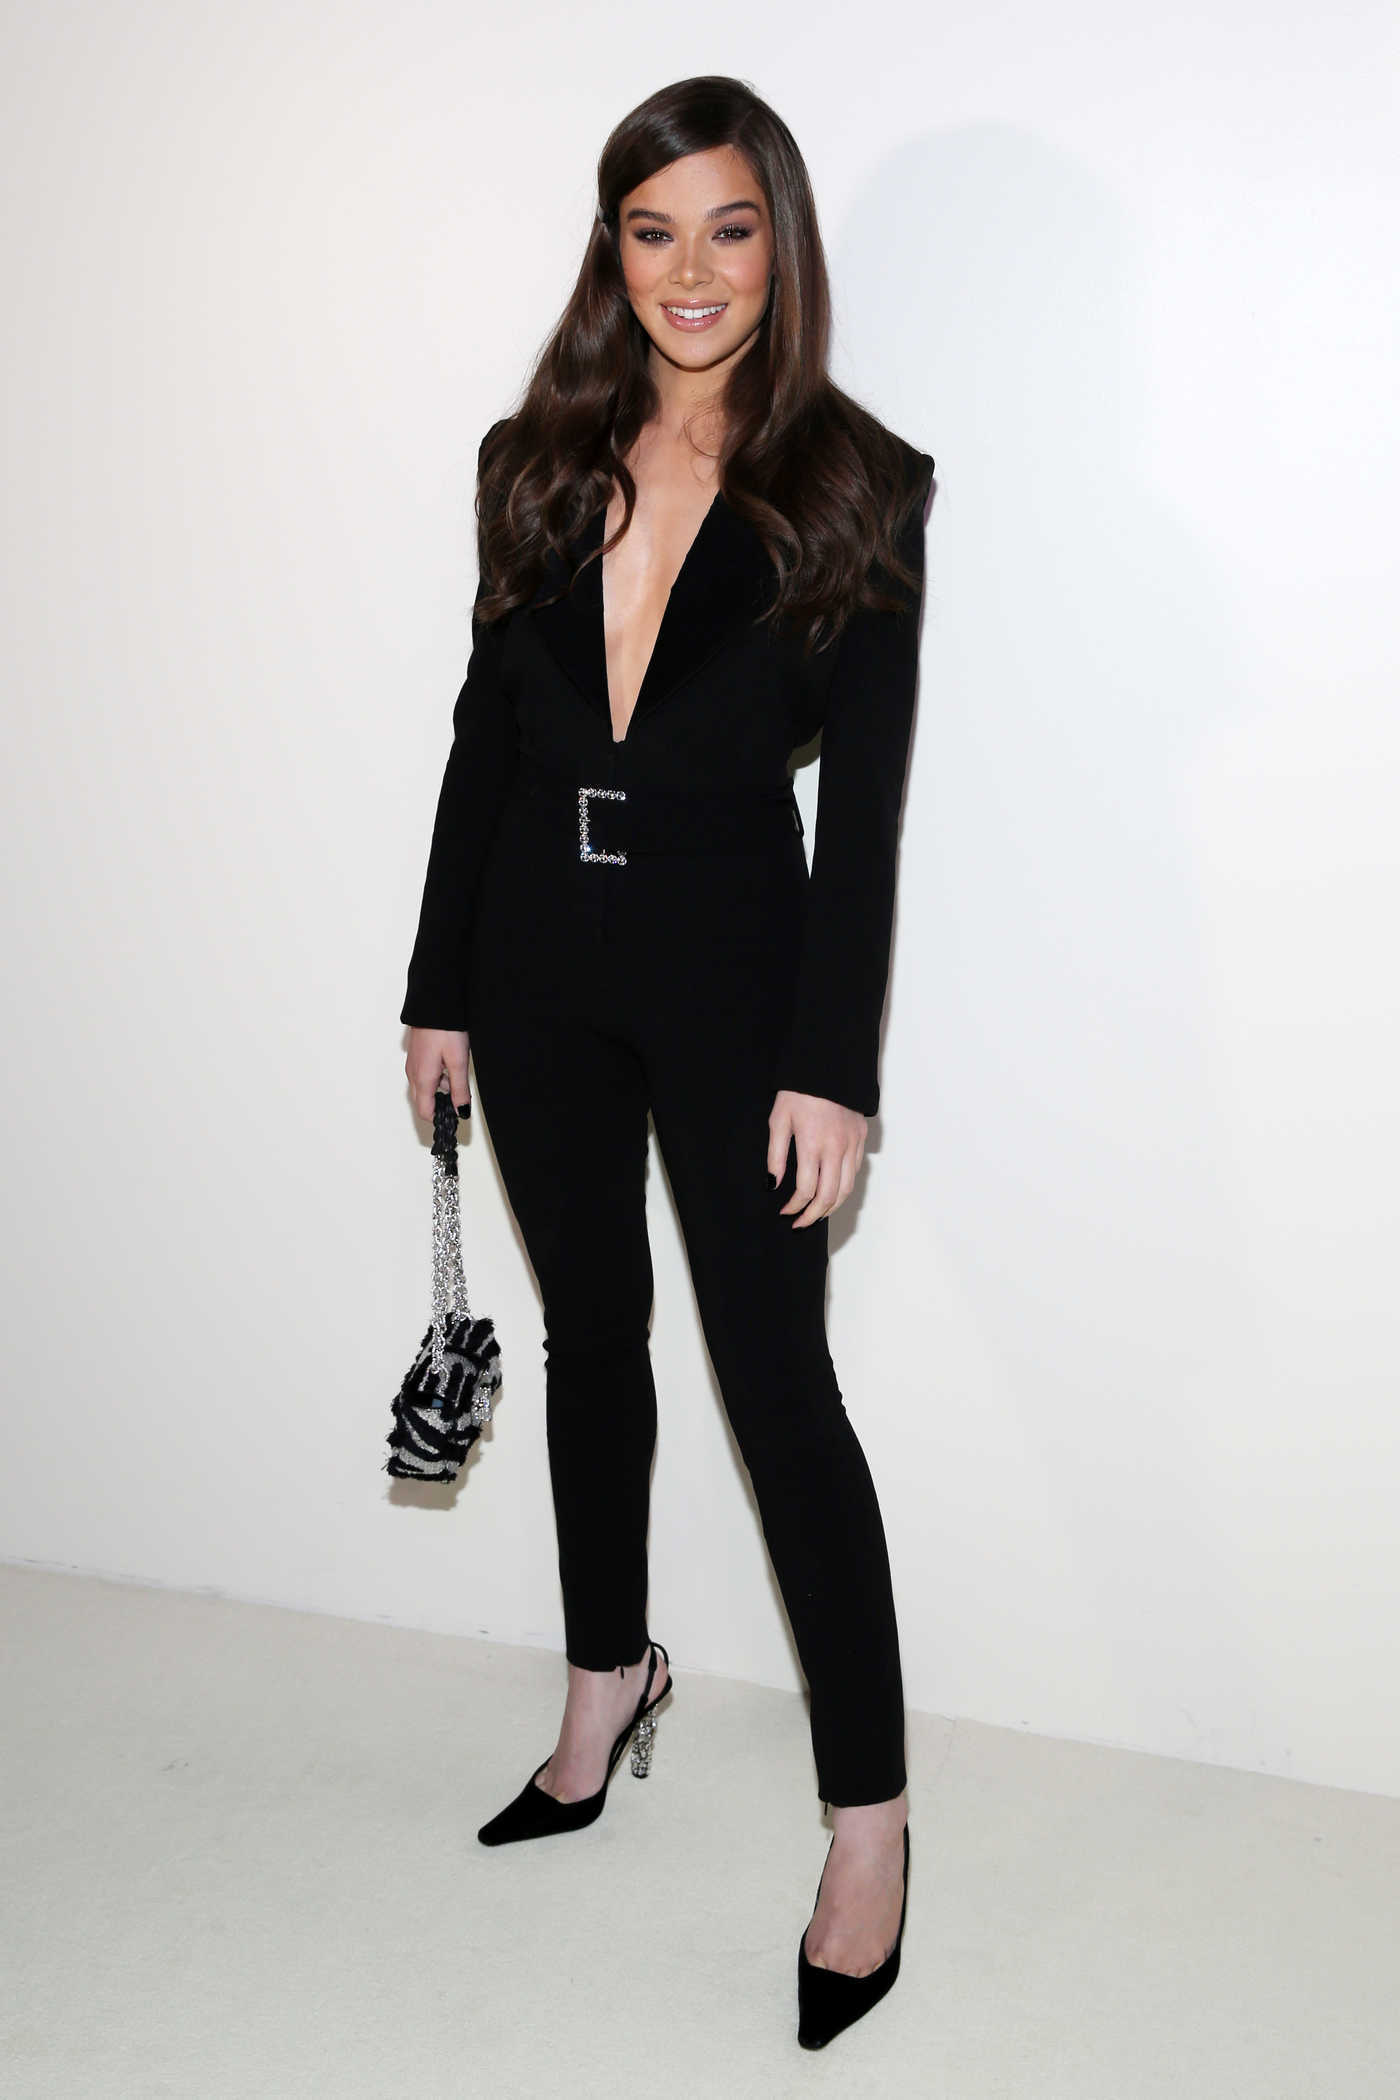 Hailee Steinfeld Attends 2019 Spring Summer Tom Ford Fashion Show During New York Fashion Week 09/05/2018